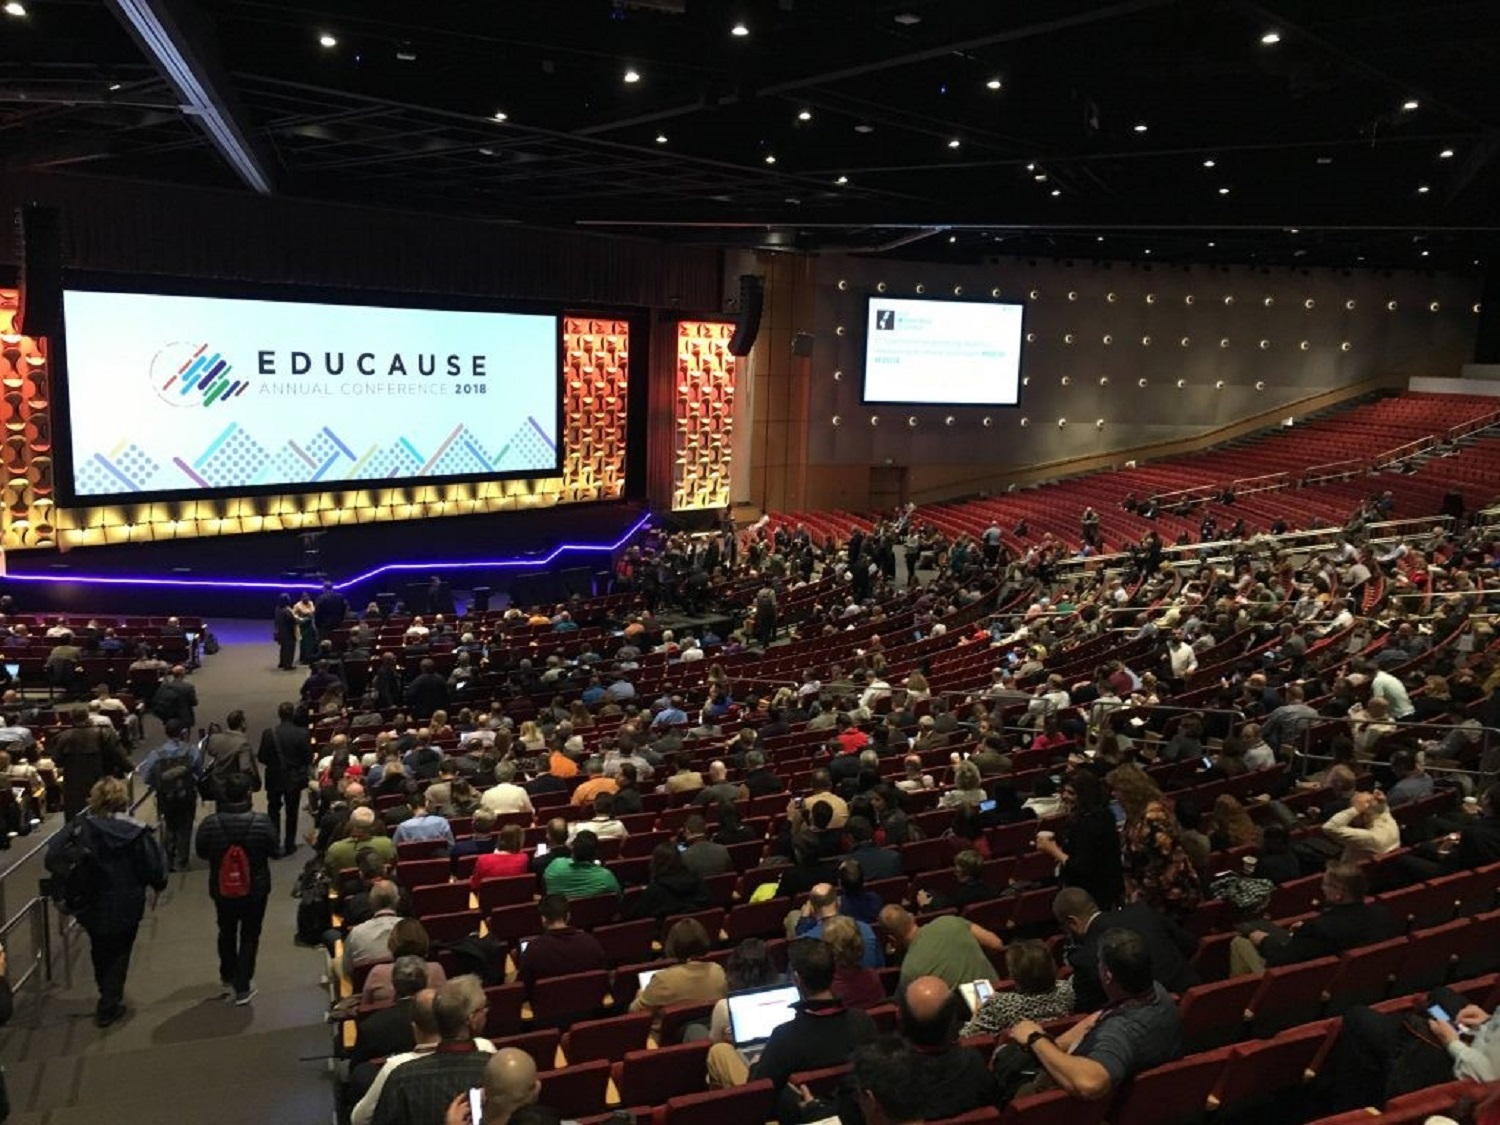 Photograph of Educase 18 annual conference lecture theatre with attendees